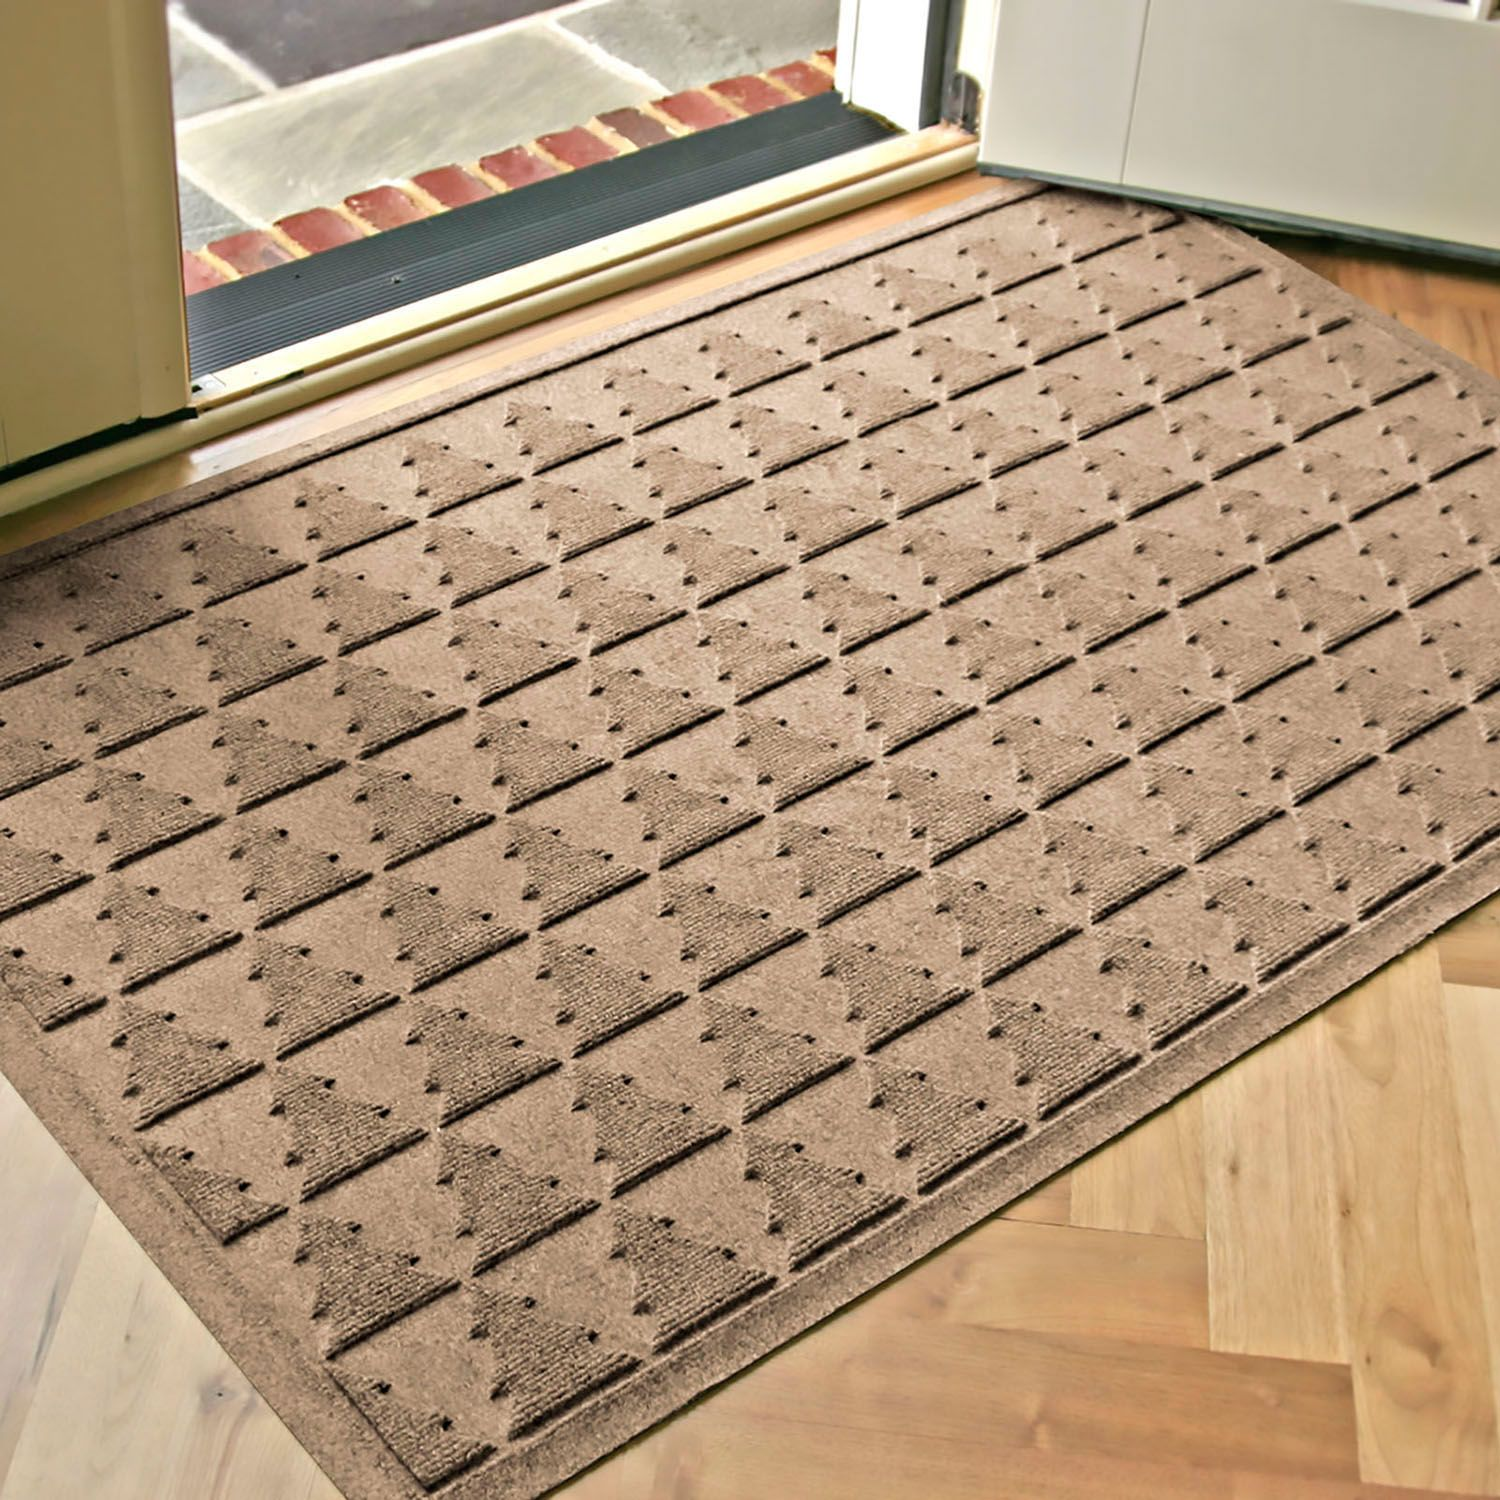 in guard x absorbent com bungalow mat water home dp kitchen mats amazon flooring dirtstopper door